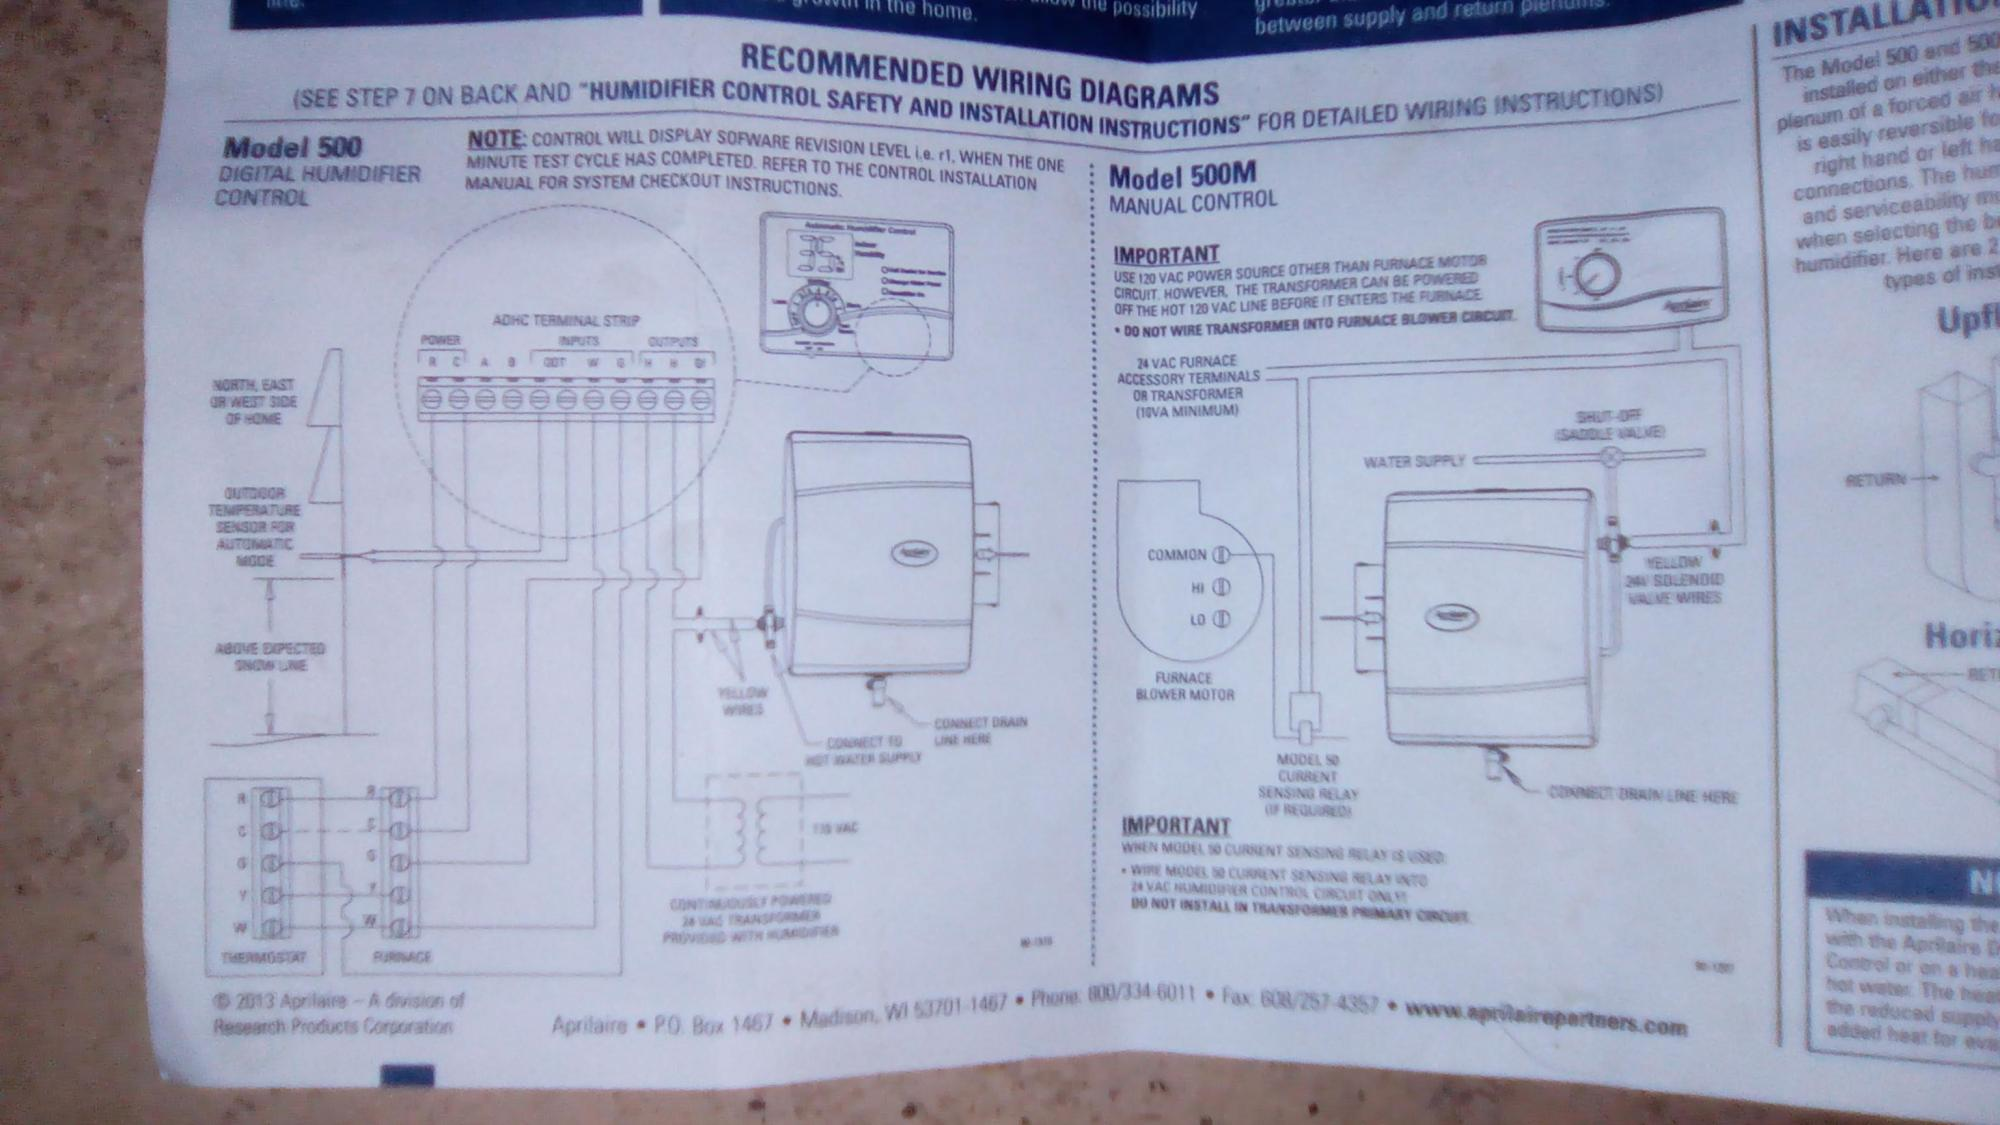 hight resolution of wiring aprilaire 500 humidifier on an amana ams8 furnace homeenter image description here